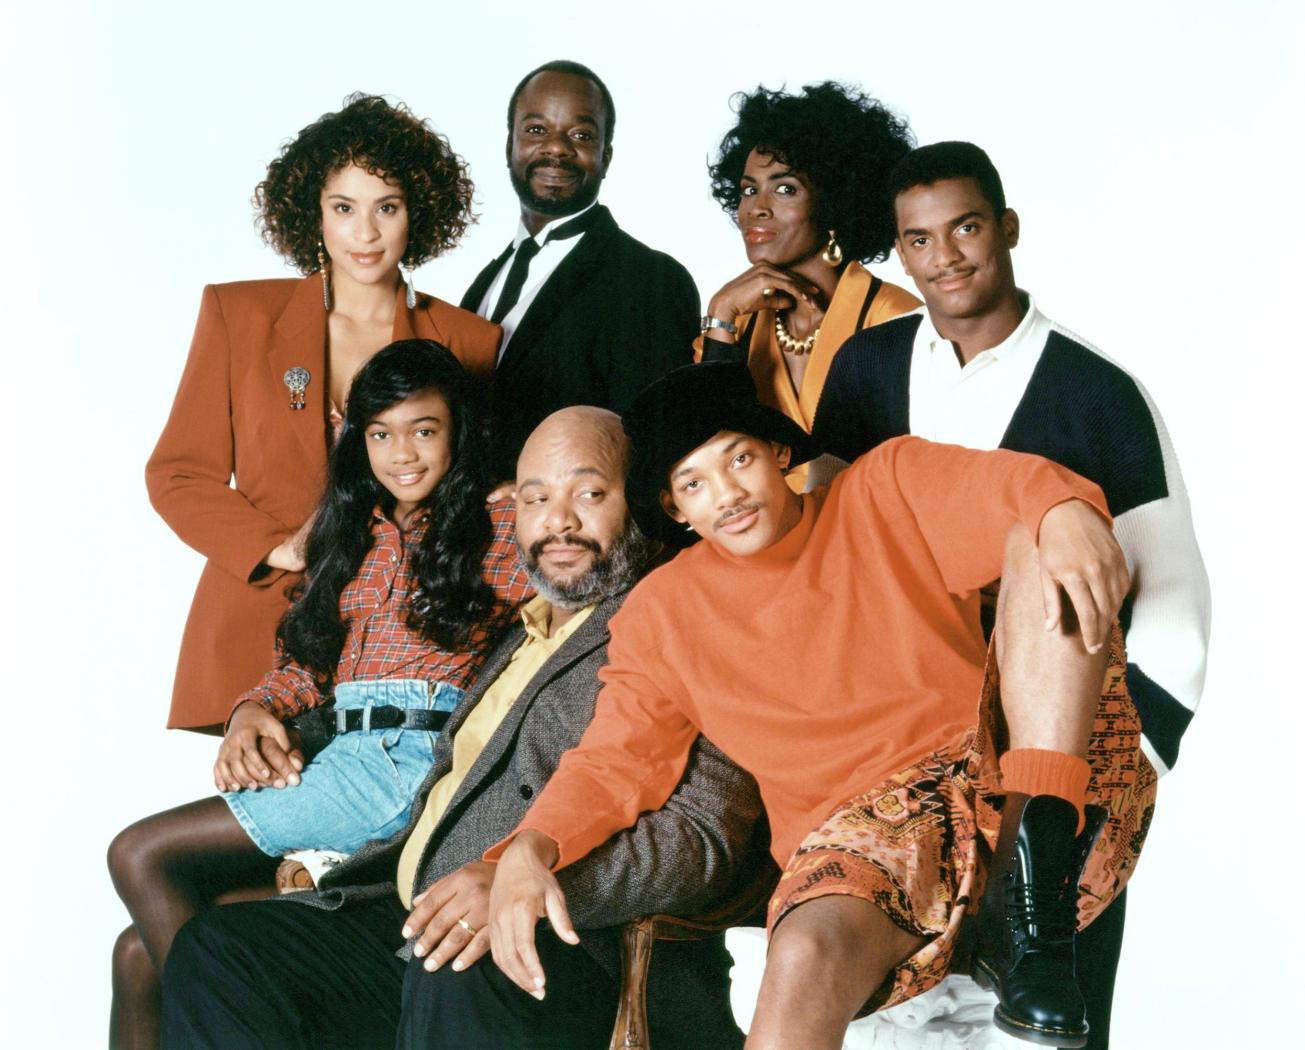 The Fresh Prince of Bel-Air ran on NBC from 1990-1996